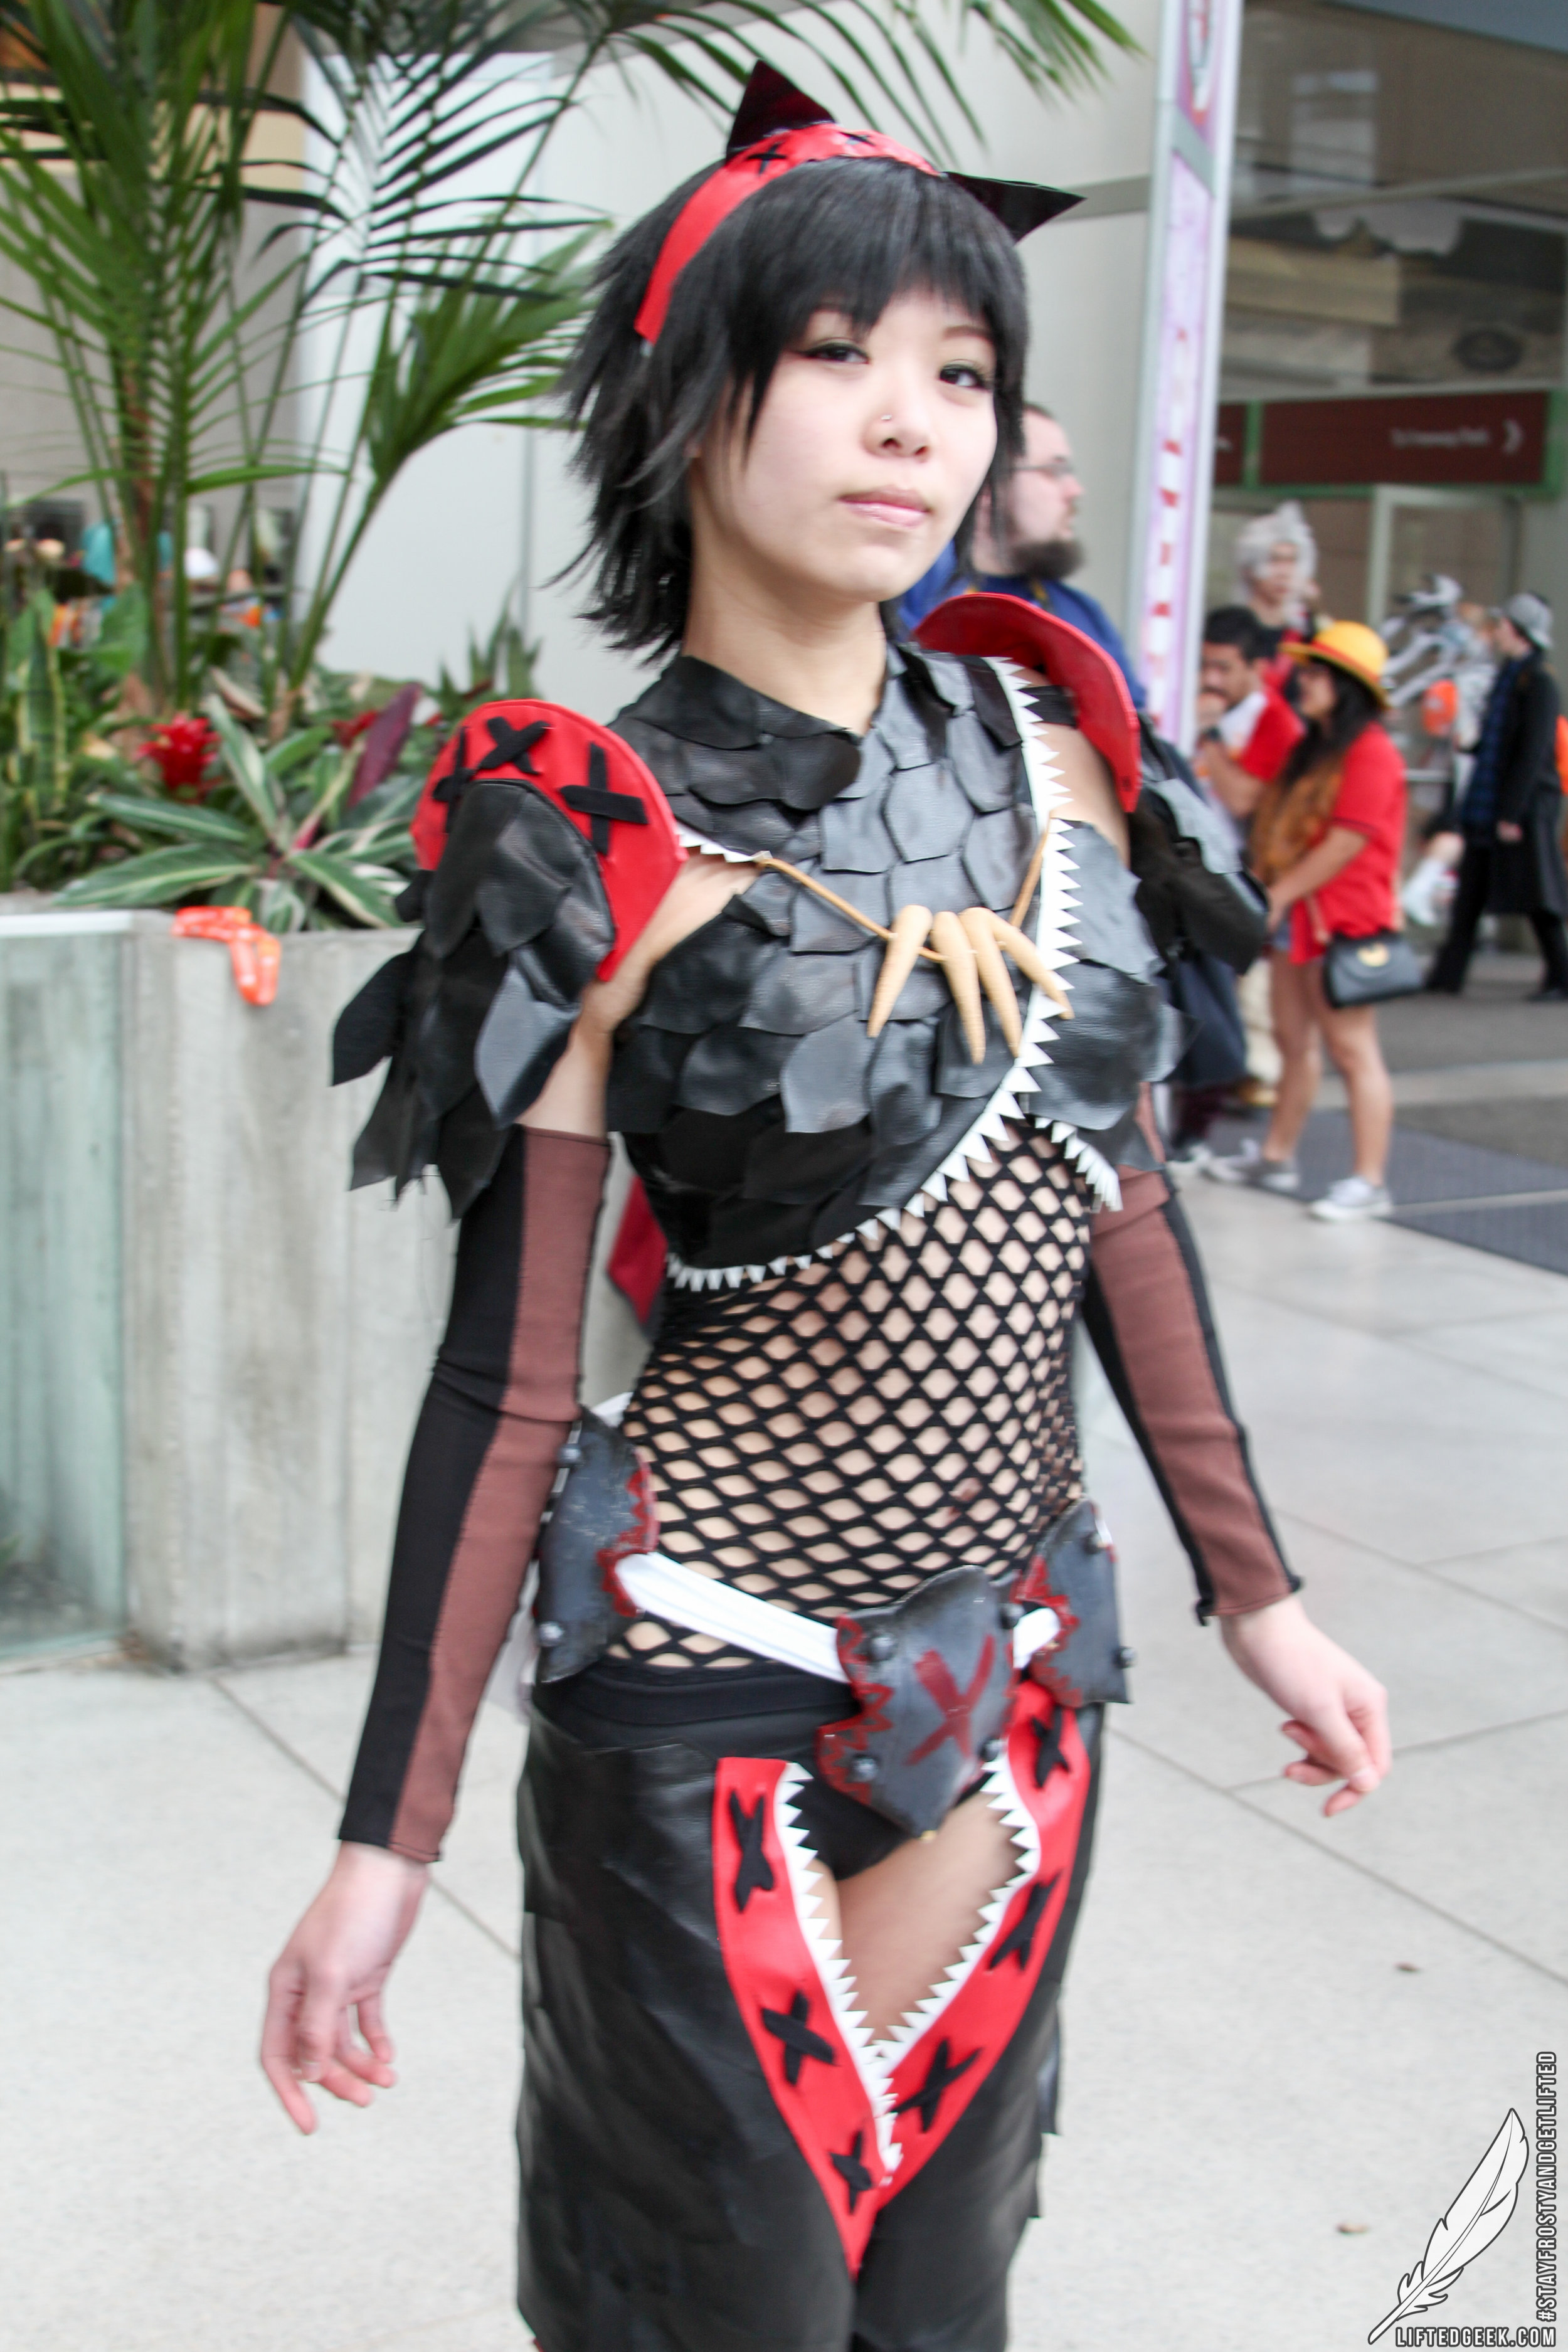 Sakuracon-cosplay-52.jpg